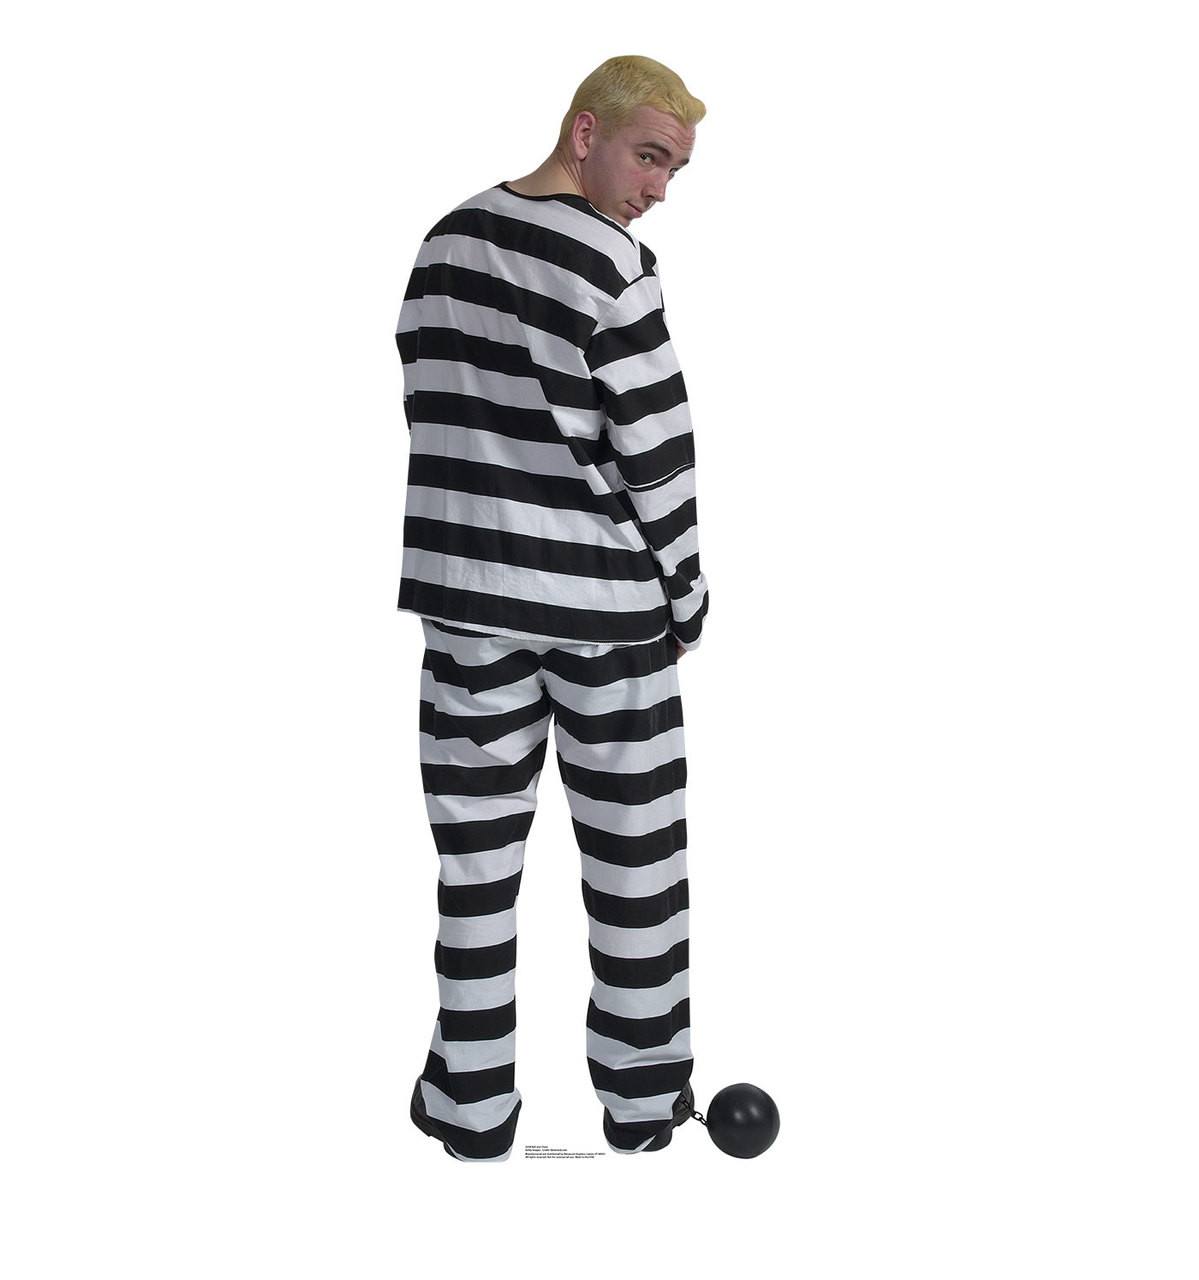 life size prisoner in striped suit with ball and chain cardboard